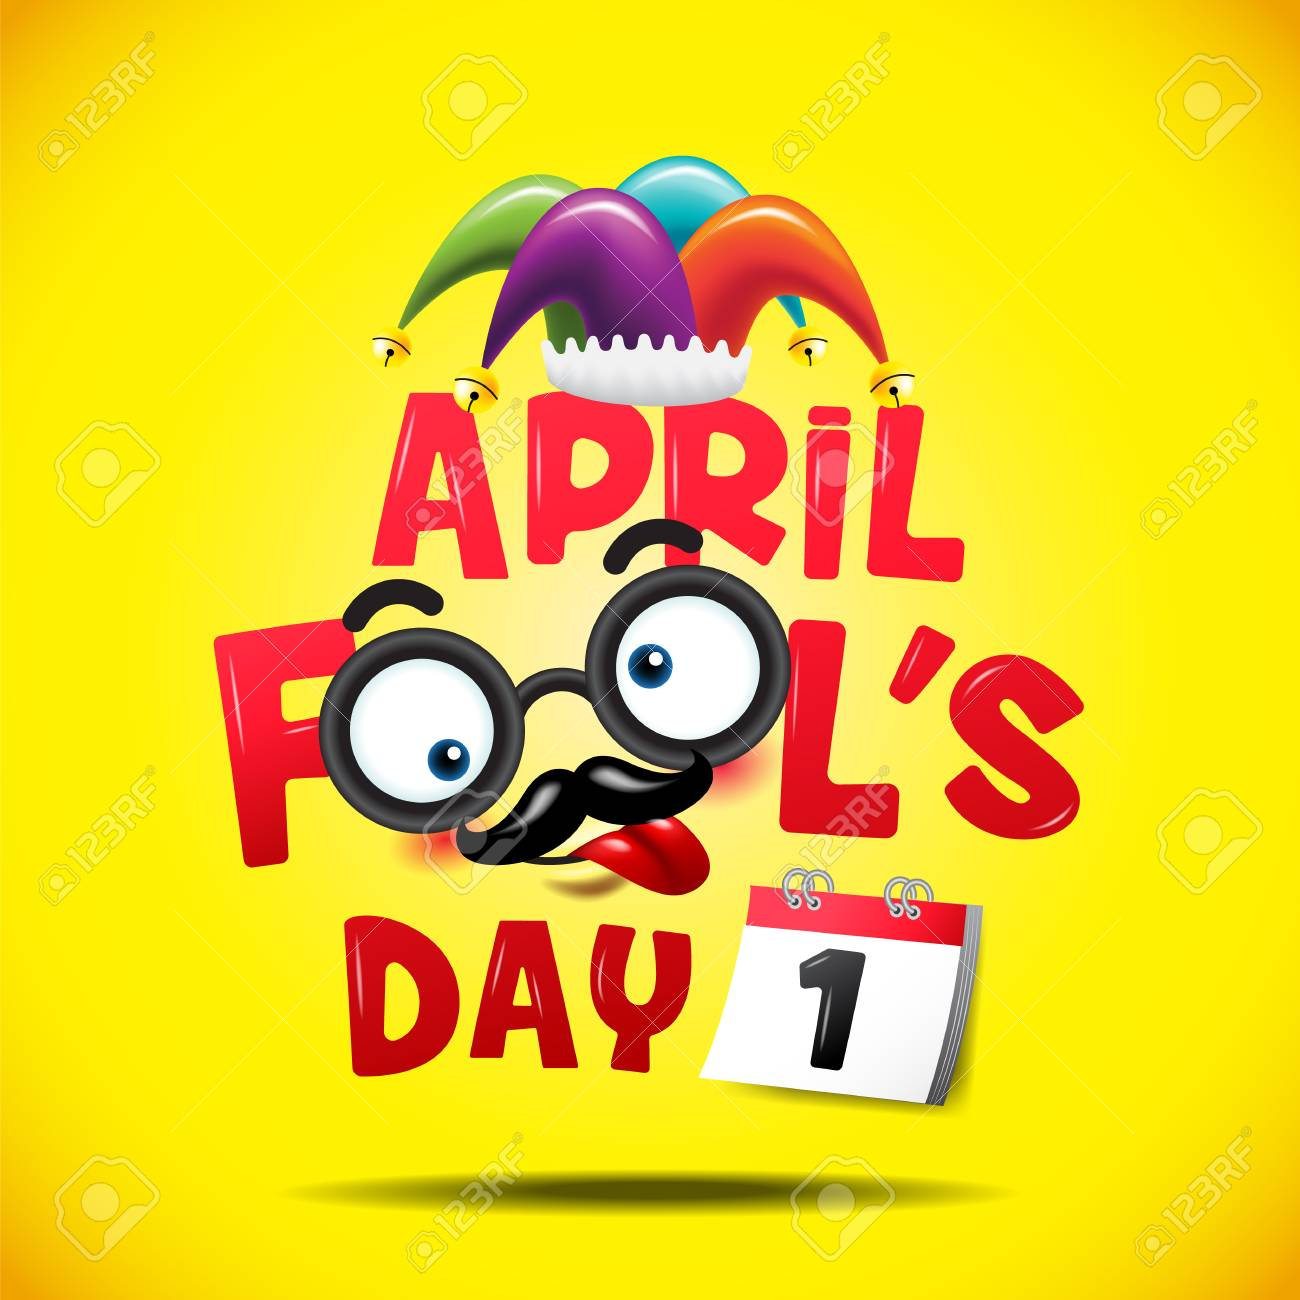 April fool's day, Typography, Colorful, vector illustration. - 95612017